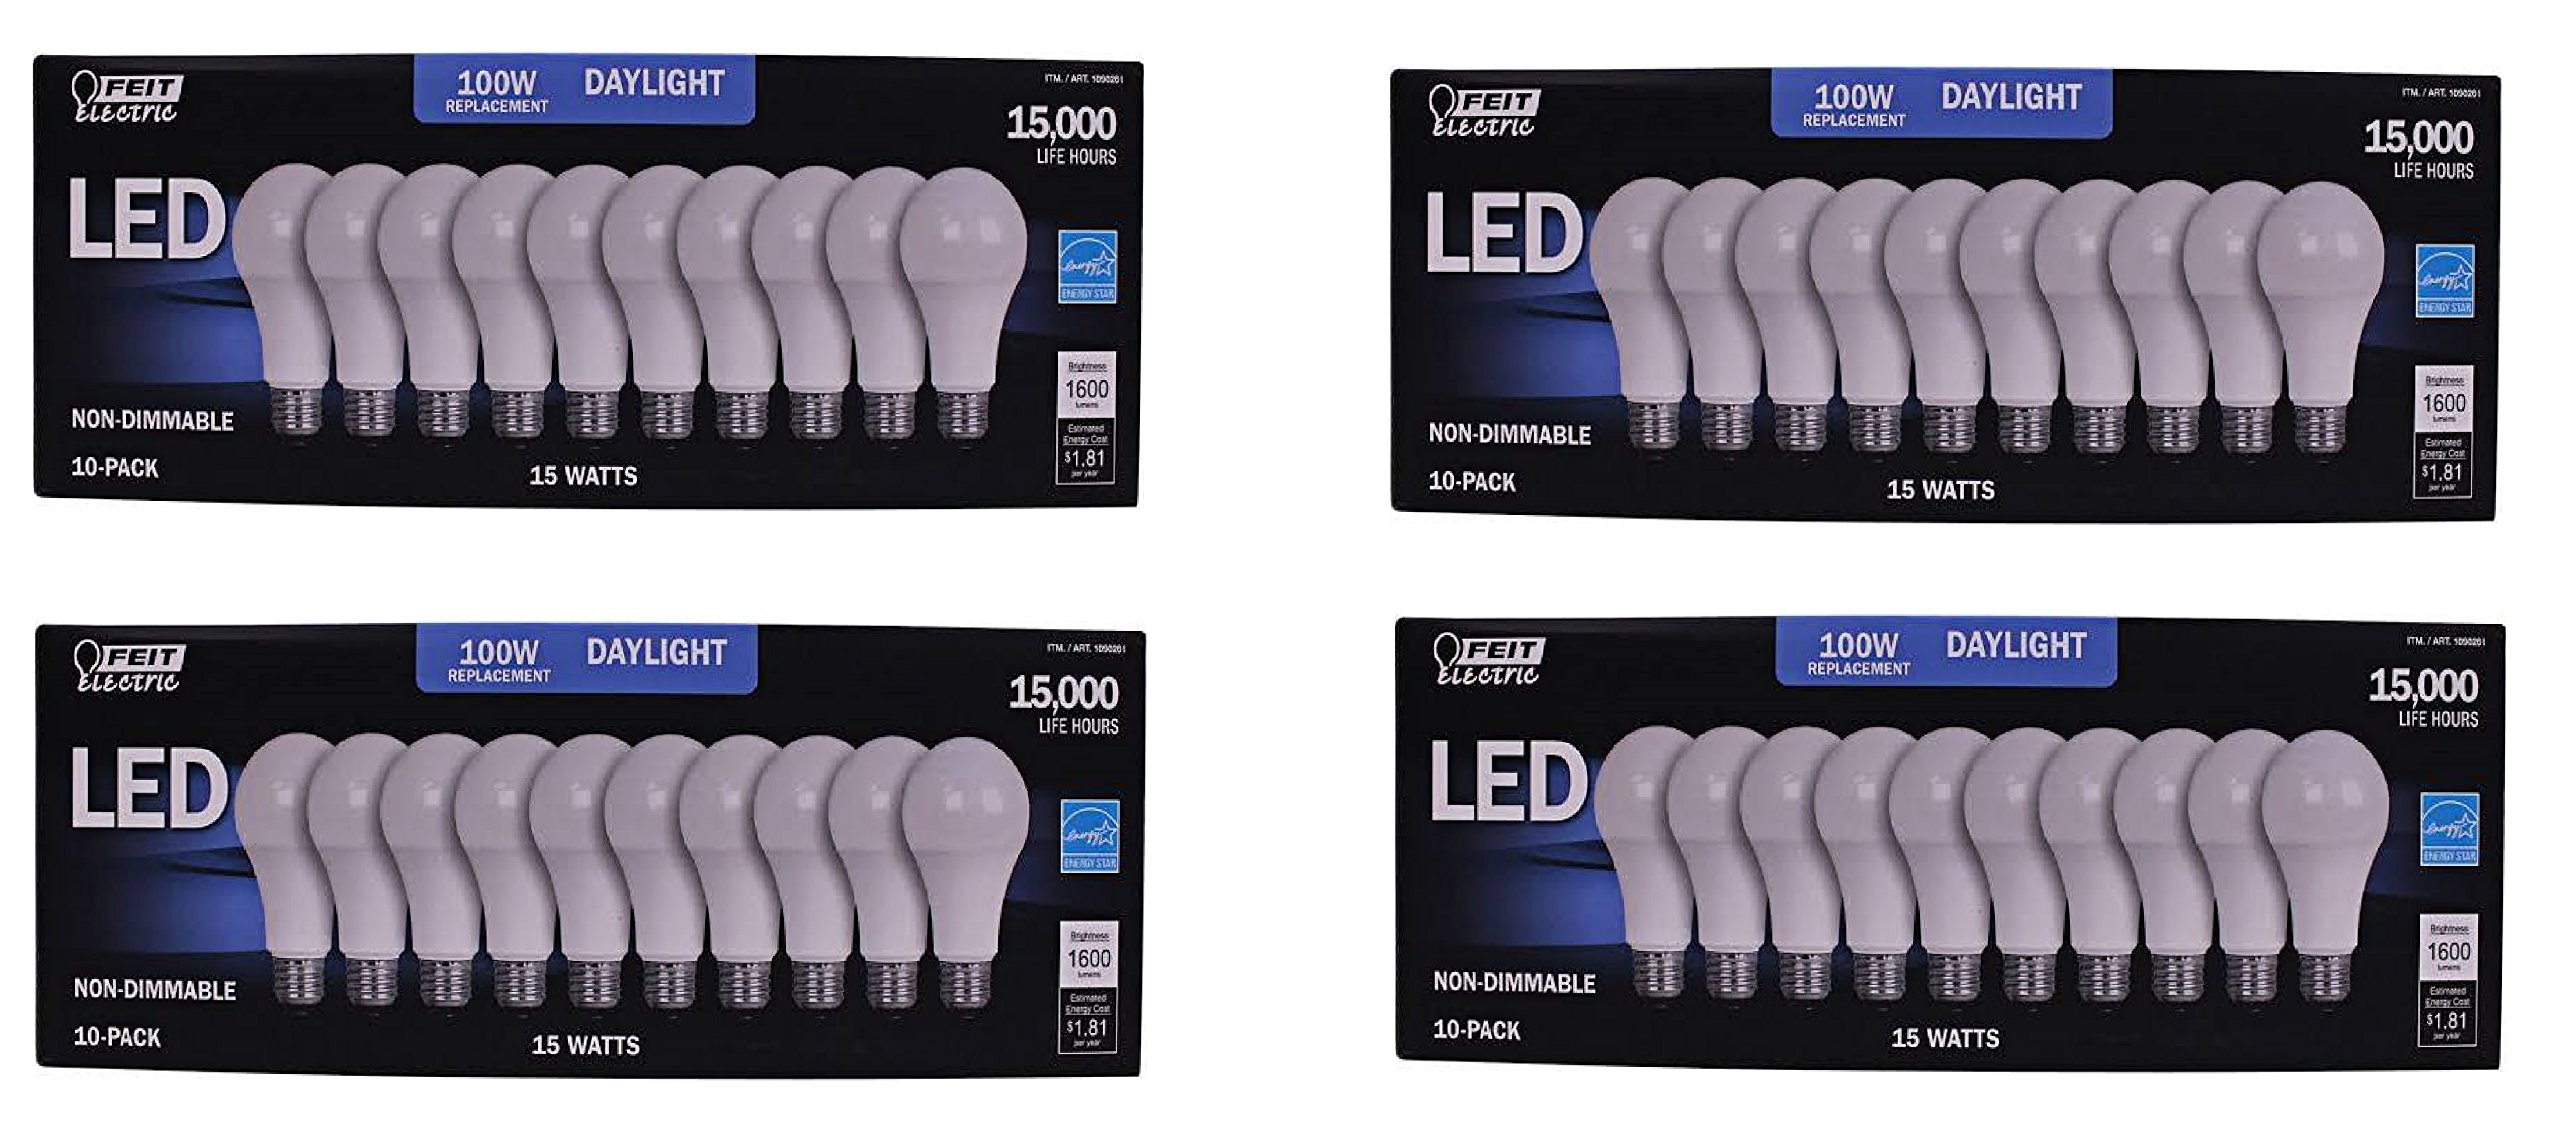 FEIT 100w LED Replacement Bulbs using 15W Daylight 5000K 1600 Lumens (40 Lamps)